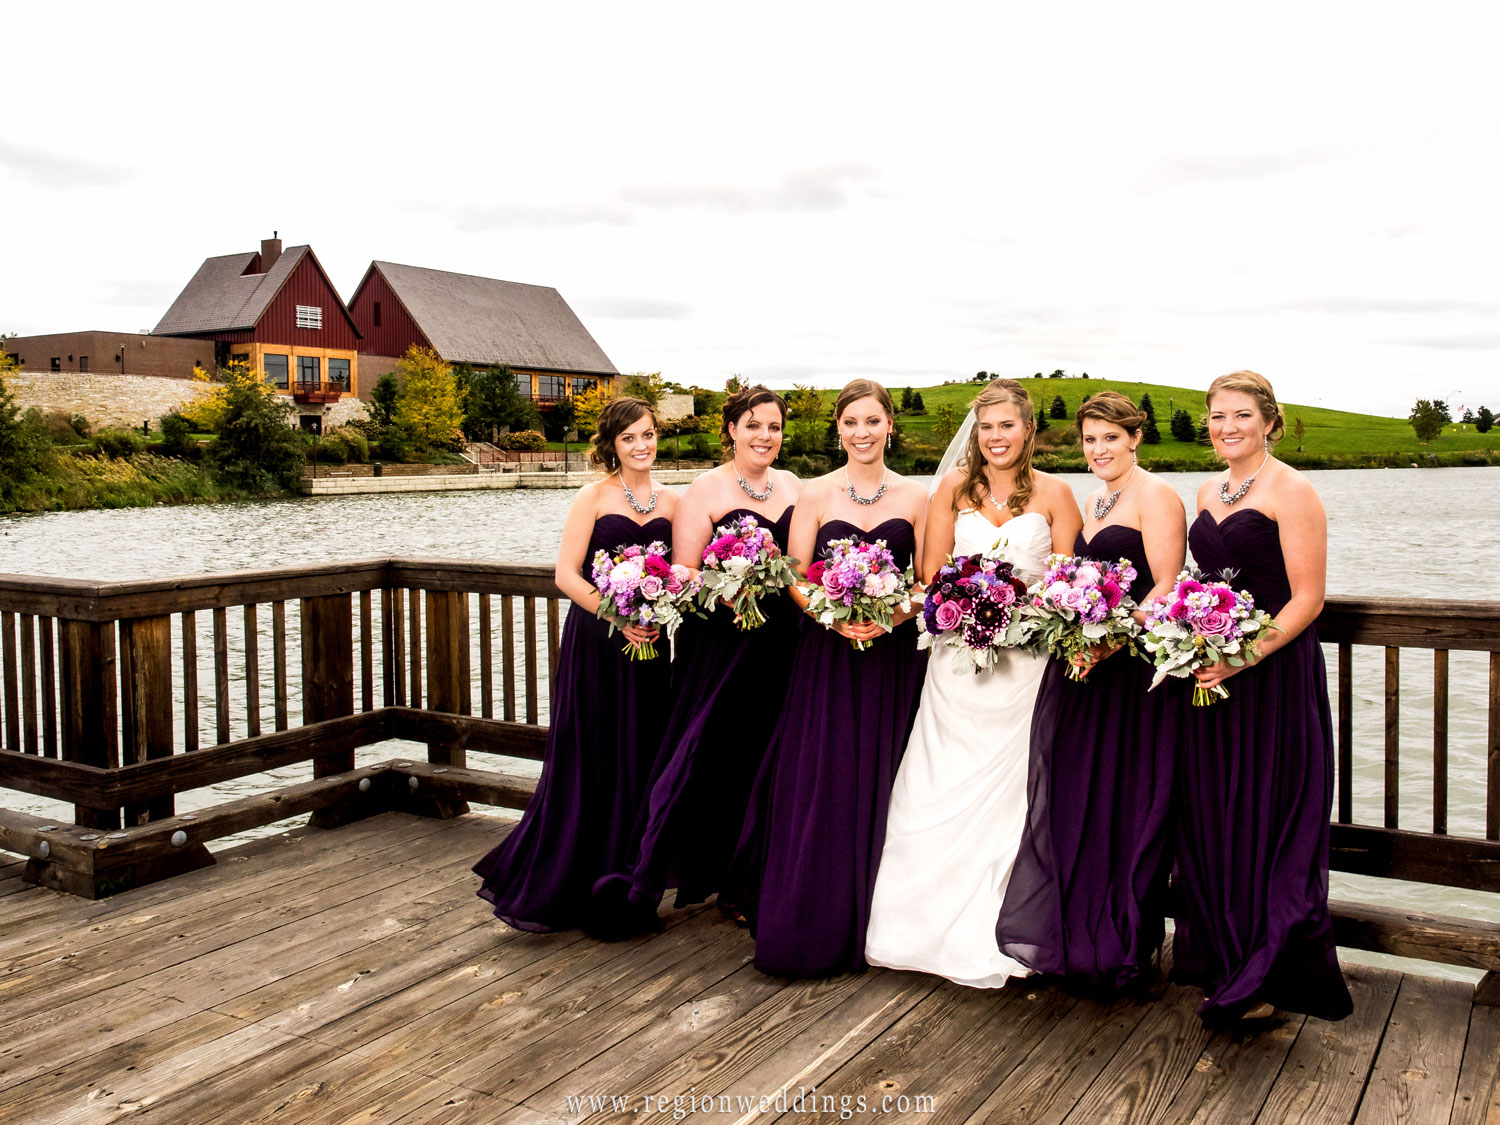 The bridesmaids show off their purple dresses on the bridge that overlooks the Centennial Park clubhouse.